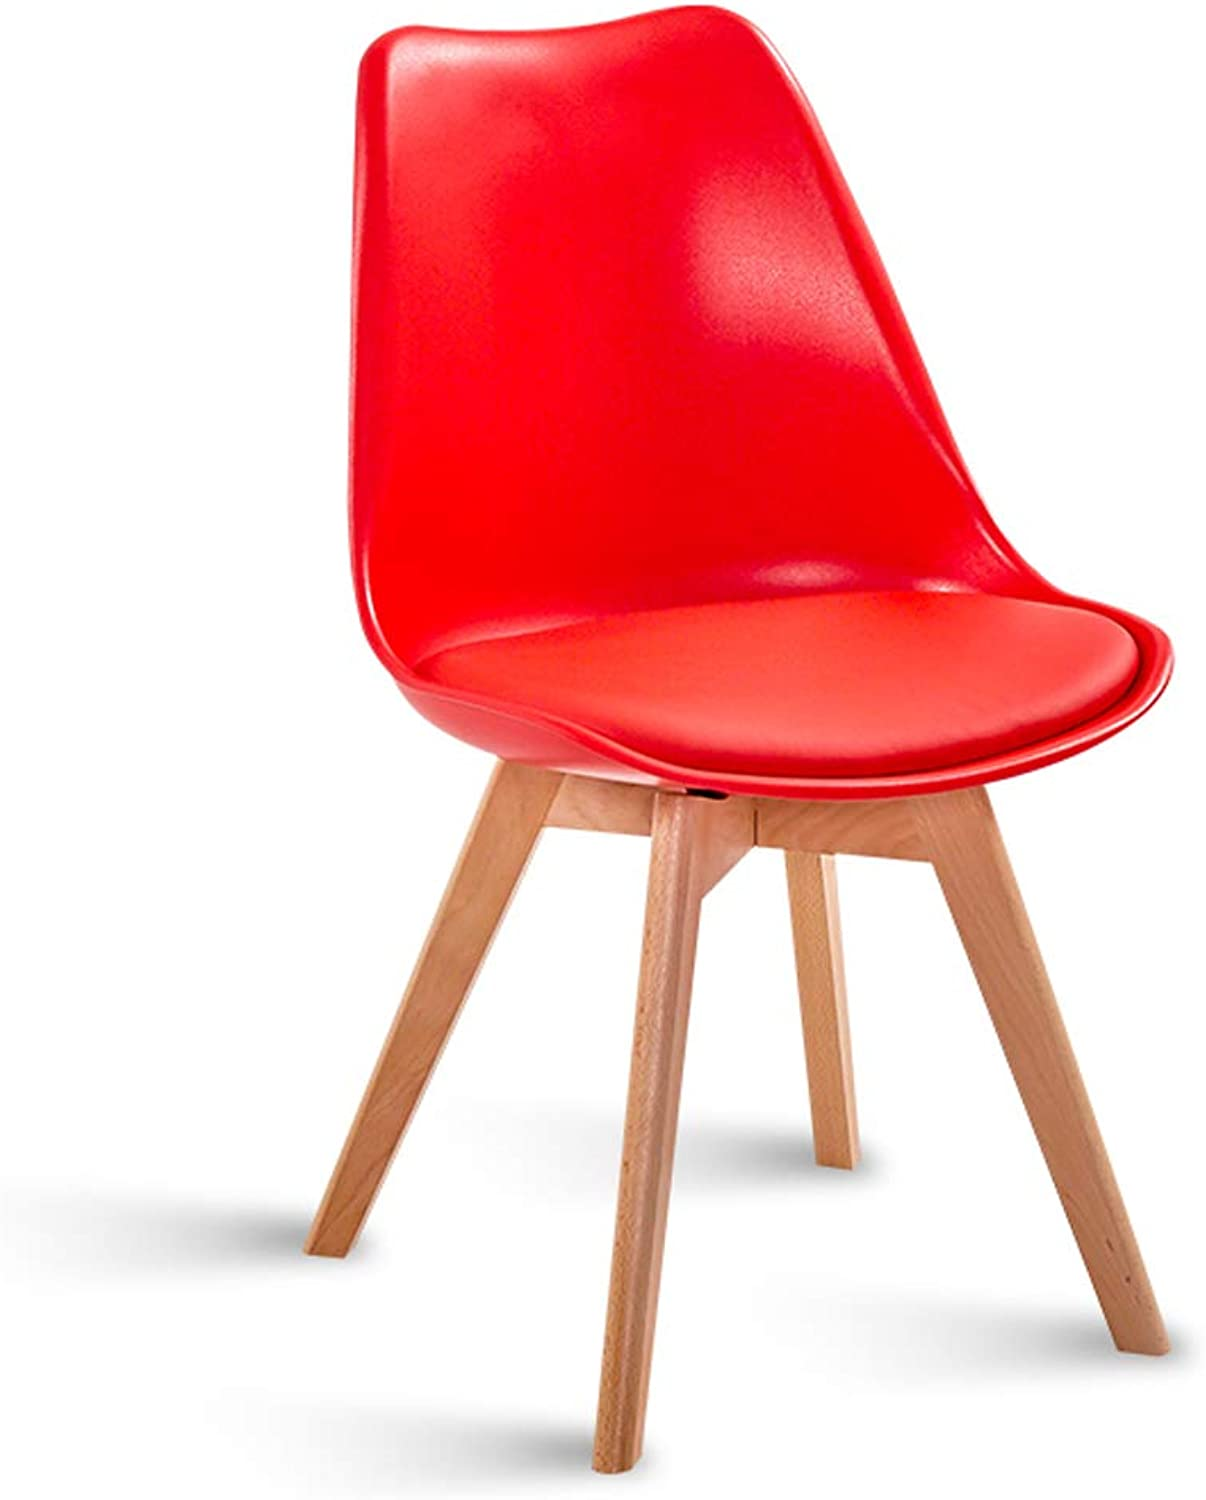 LRW Modern Creative Receptionist Office Chair Nordic Minimalist Dining Chair Back Chair Red